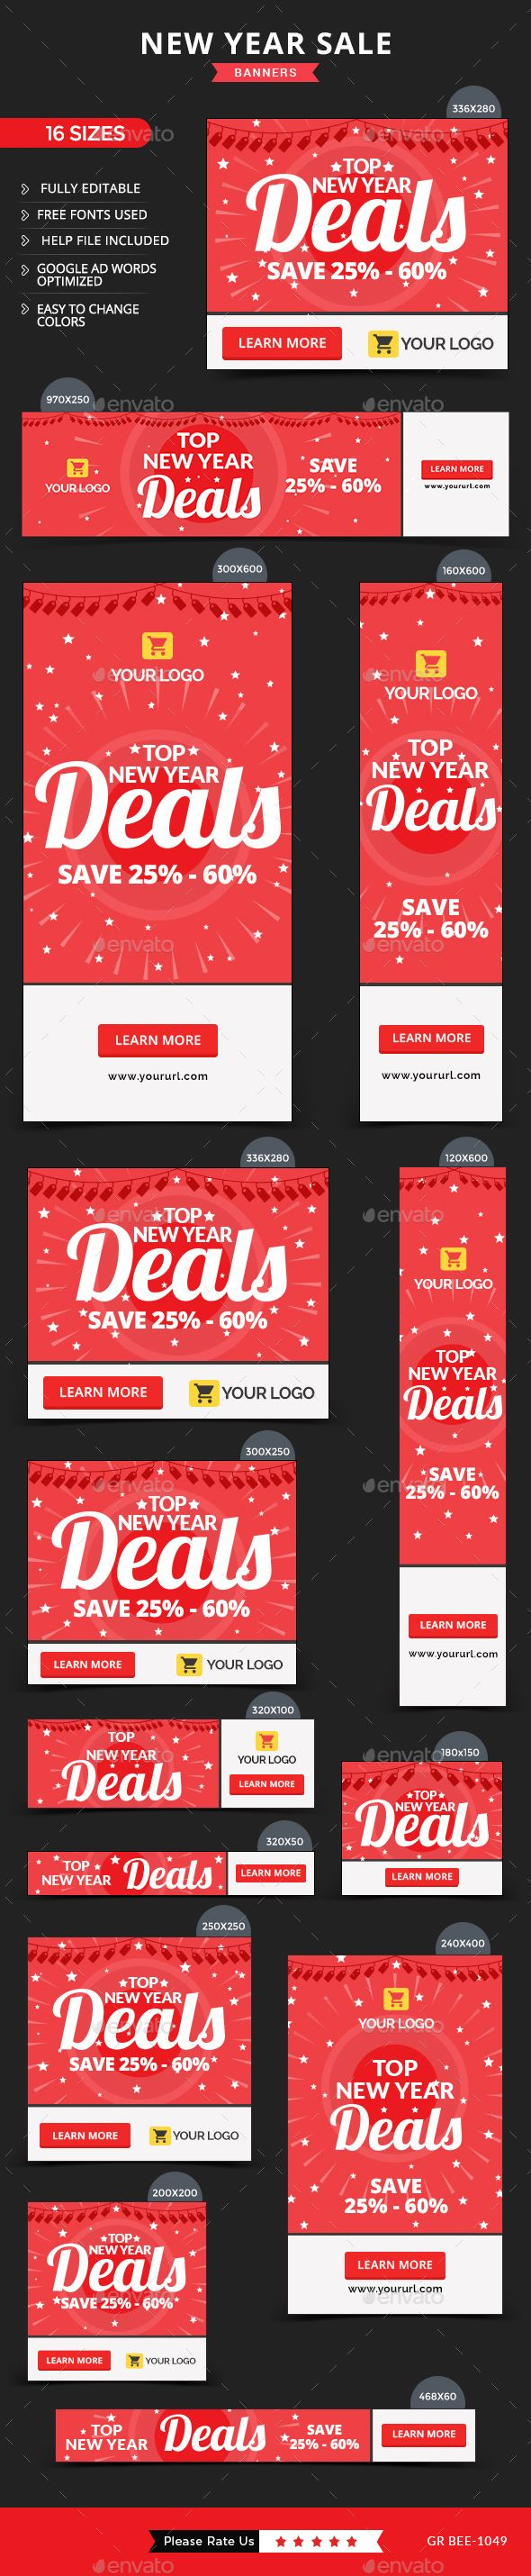 New Year Sale Web Banners Template PSD #design #ad Download: http://graphicriver.net/item/new-year-sale-banners/14119534?ref=ksioks